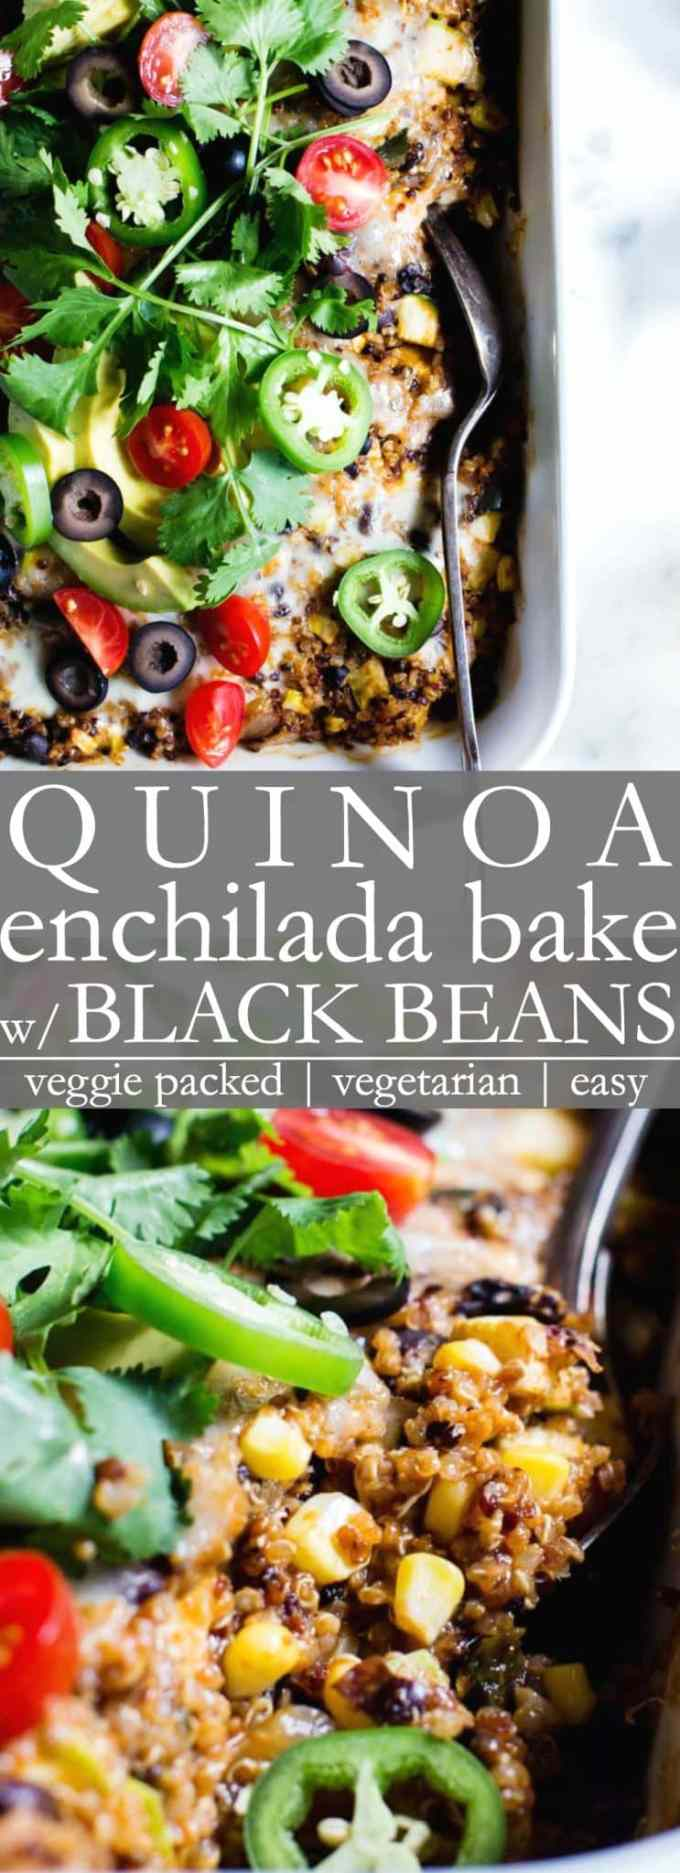 Quinoa Enchilada Bake / Casserole with Black Beans is chock full of veggies! Perfect for sharing - a healthy vegetarian dinner recipe that freezes with ease and is perfect for meal prep